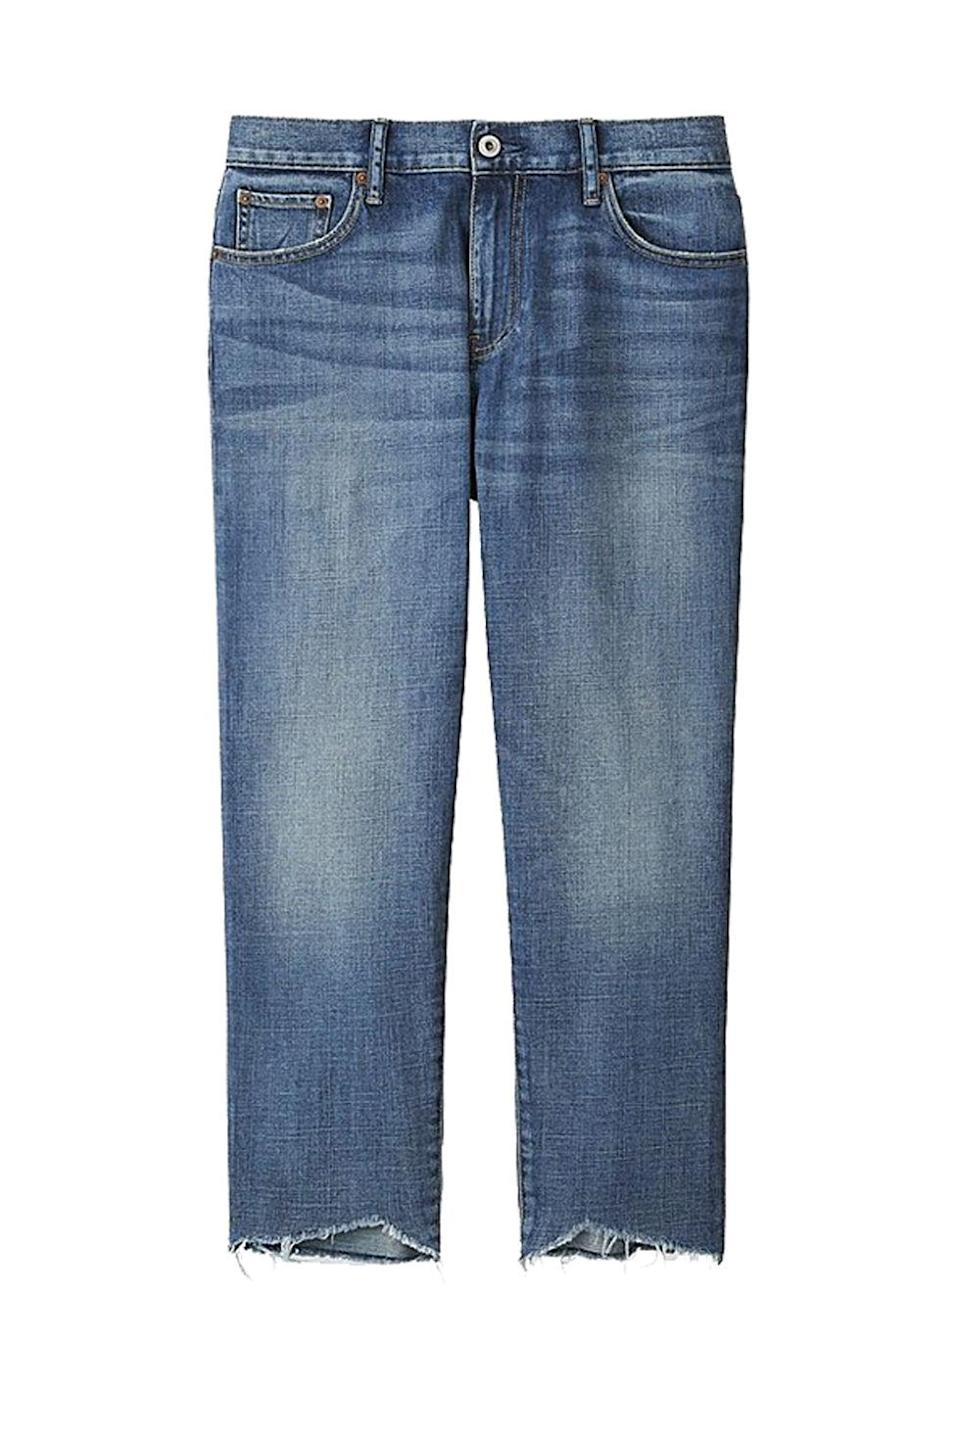 """<p>Laid flat, not particularly impressive. But on a person? The kind of perfect slouch you get stopped on the street for. </p><p><strong>BUY IT:</strong> Uniqlo, $30; <a href=""""https://www.uniqlo.com/us/en/women-slim-boyfriend-fit-ankle-jeans-193933.html?dwvar_193933_color=COL63&cgid="""" rel=""""nofollow noopener"""" target=""""_blank"""" data-ylk=""""slk:uniqlo.com"""" class=""""link rapid-noclick-resp"""">uniqlo.com</a>.</p>"""